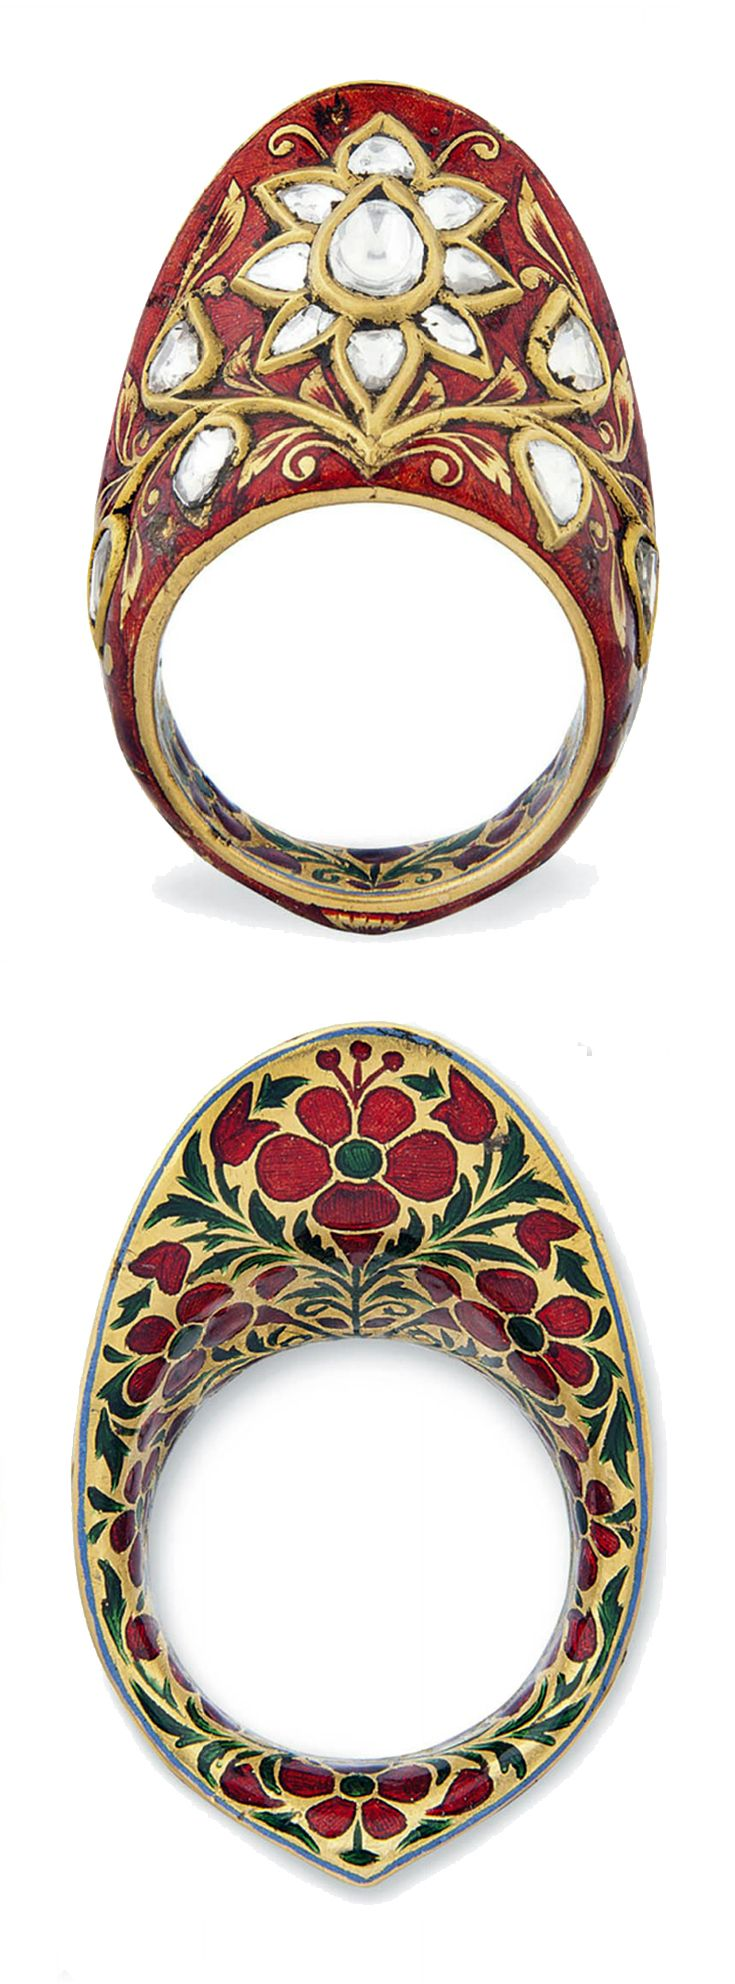 India | Archer's ring; gold, diamonds and enamel | 19th century | 2'570£ ~ sold (Apr '12)